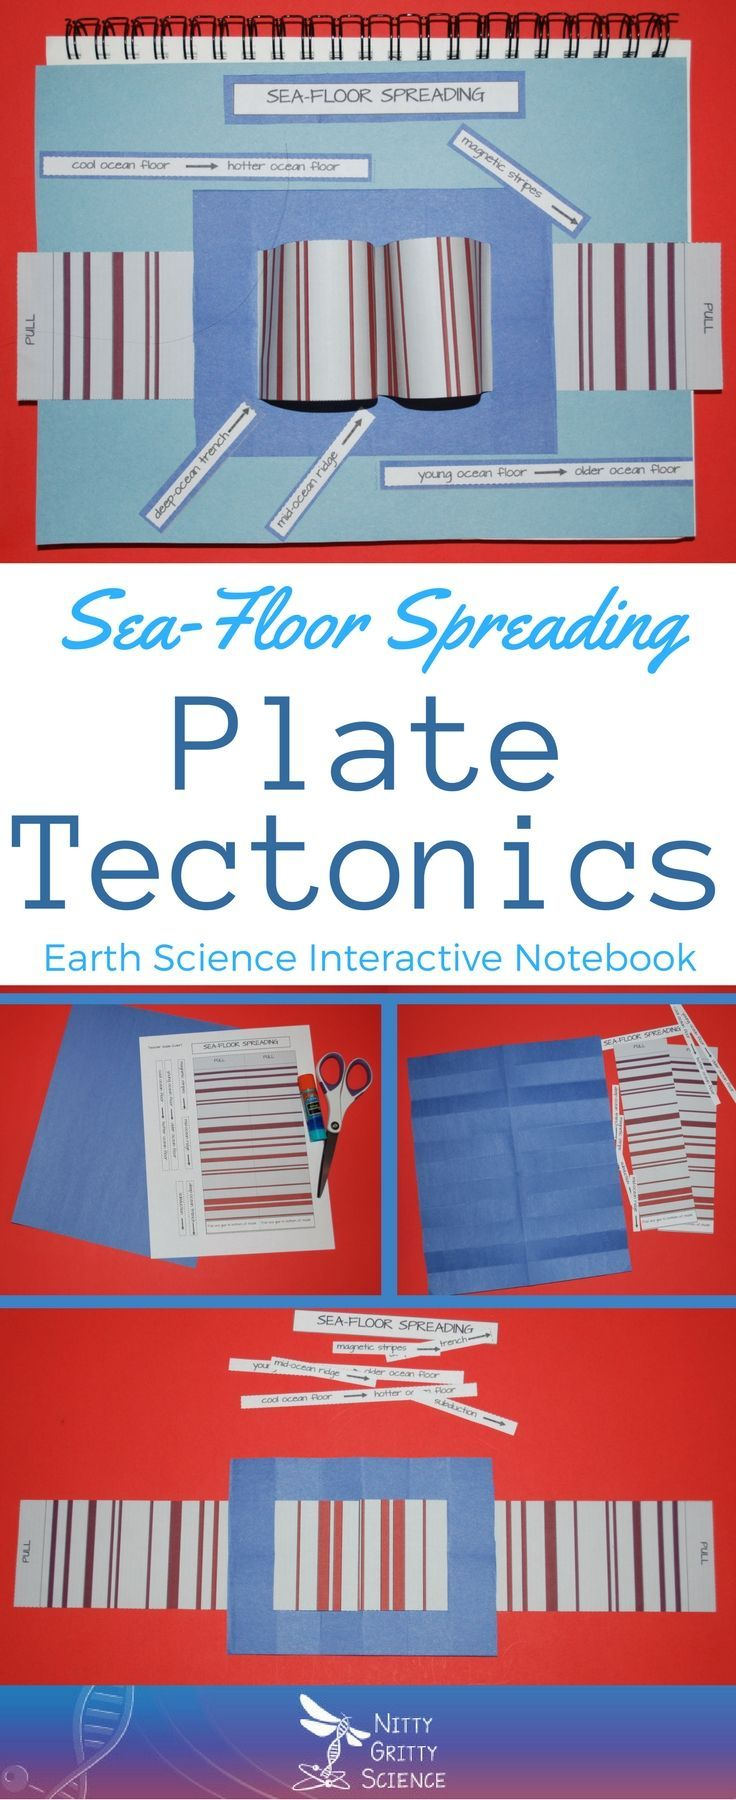 Best 20 plate tectonics ideas on pinterest jn online 6th grade plate tectonics showcases many activities for the students both middle and high school to robcynllc Choice Image